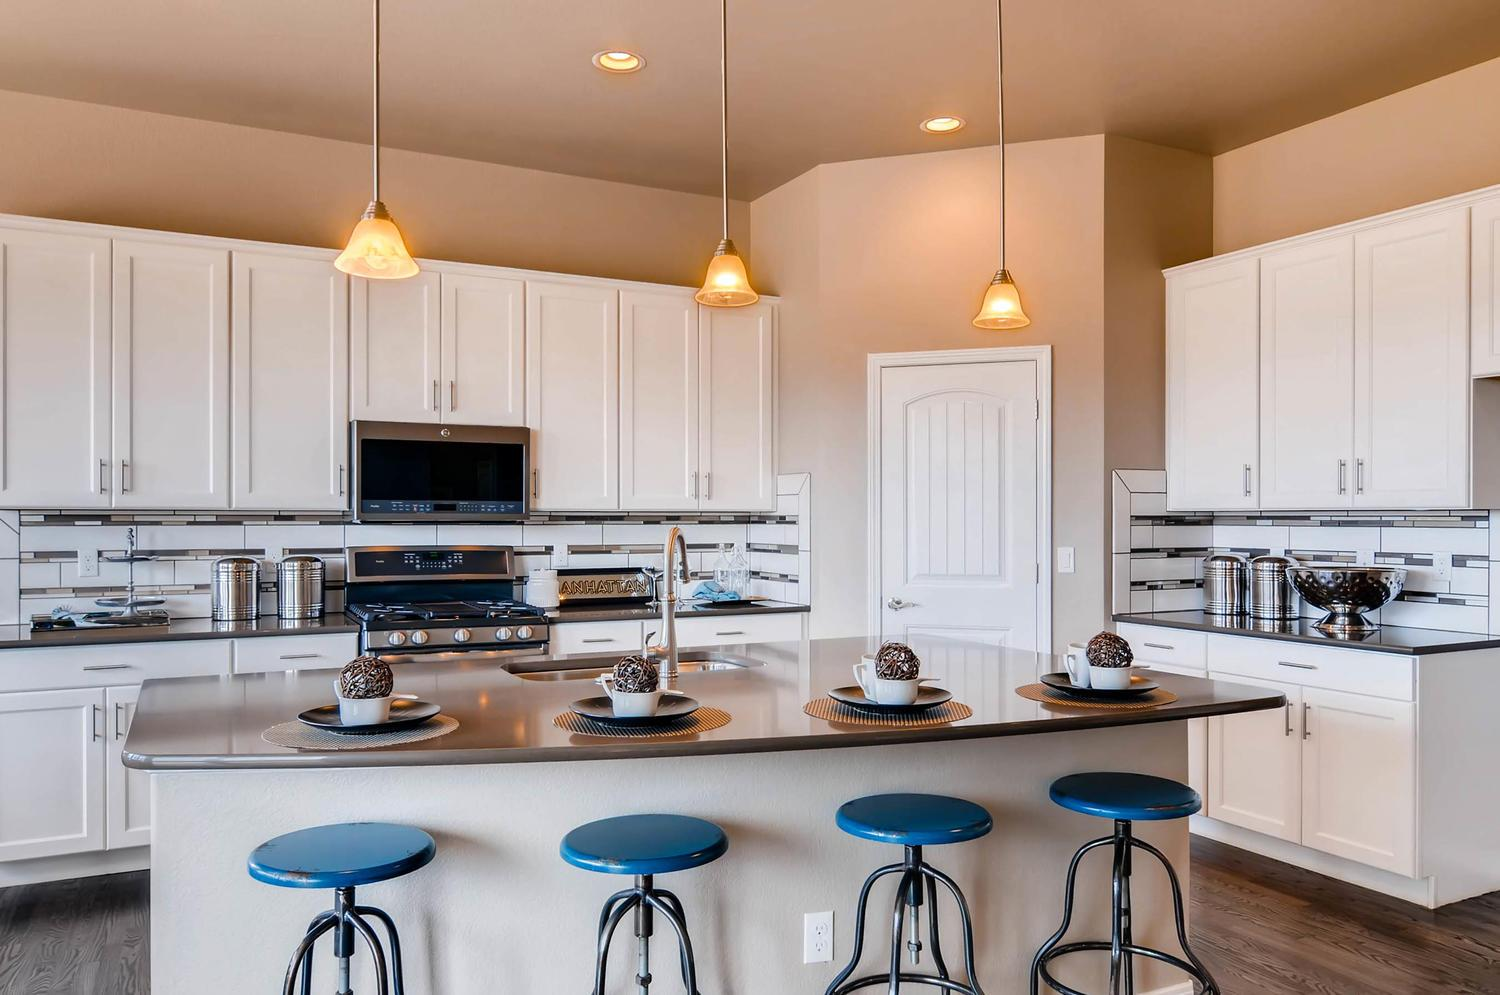 Kitchen featured in the San Isabel II By Classic Homes in Colorado Springs, CO